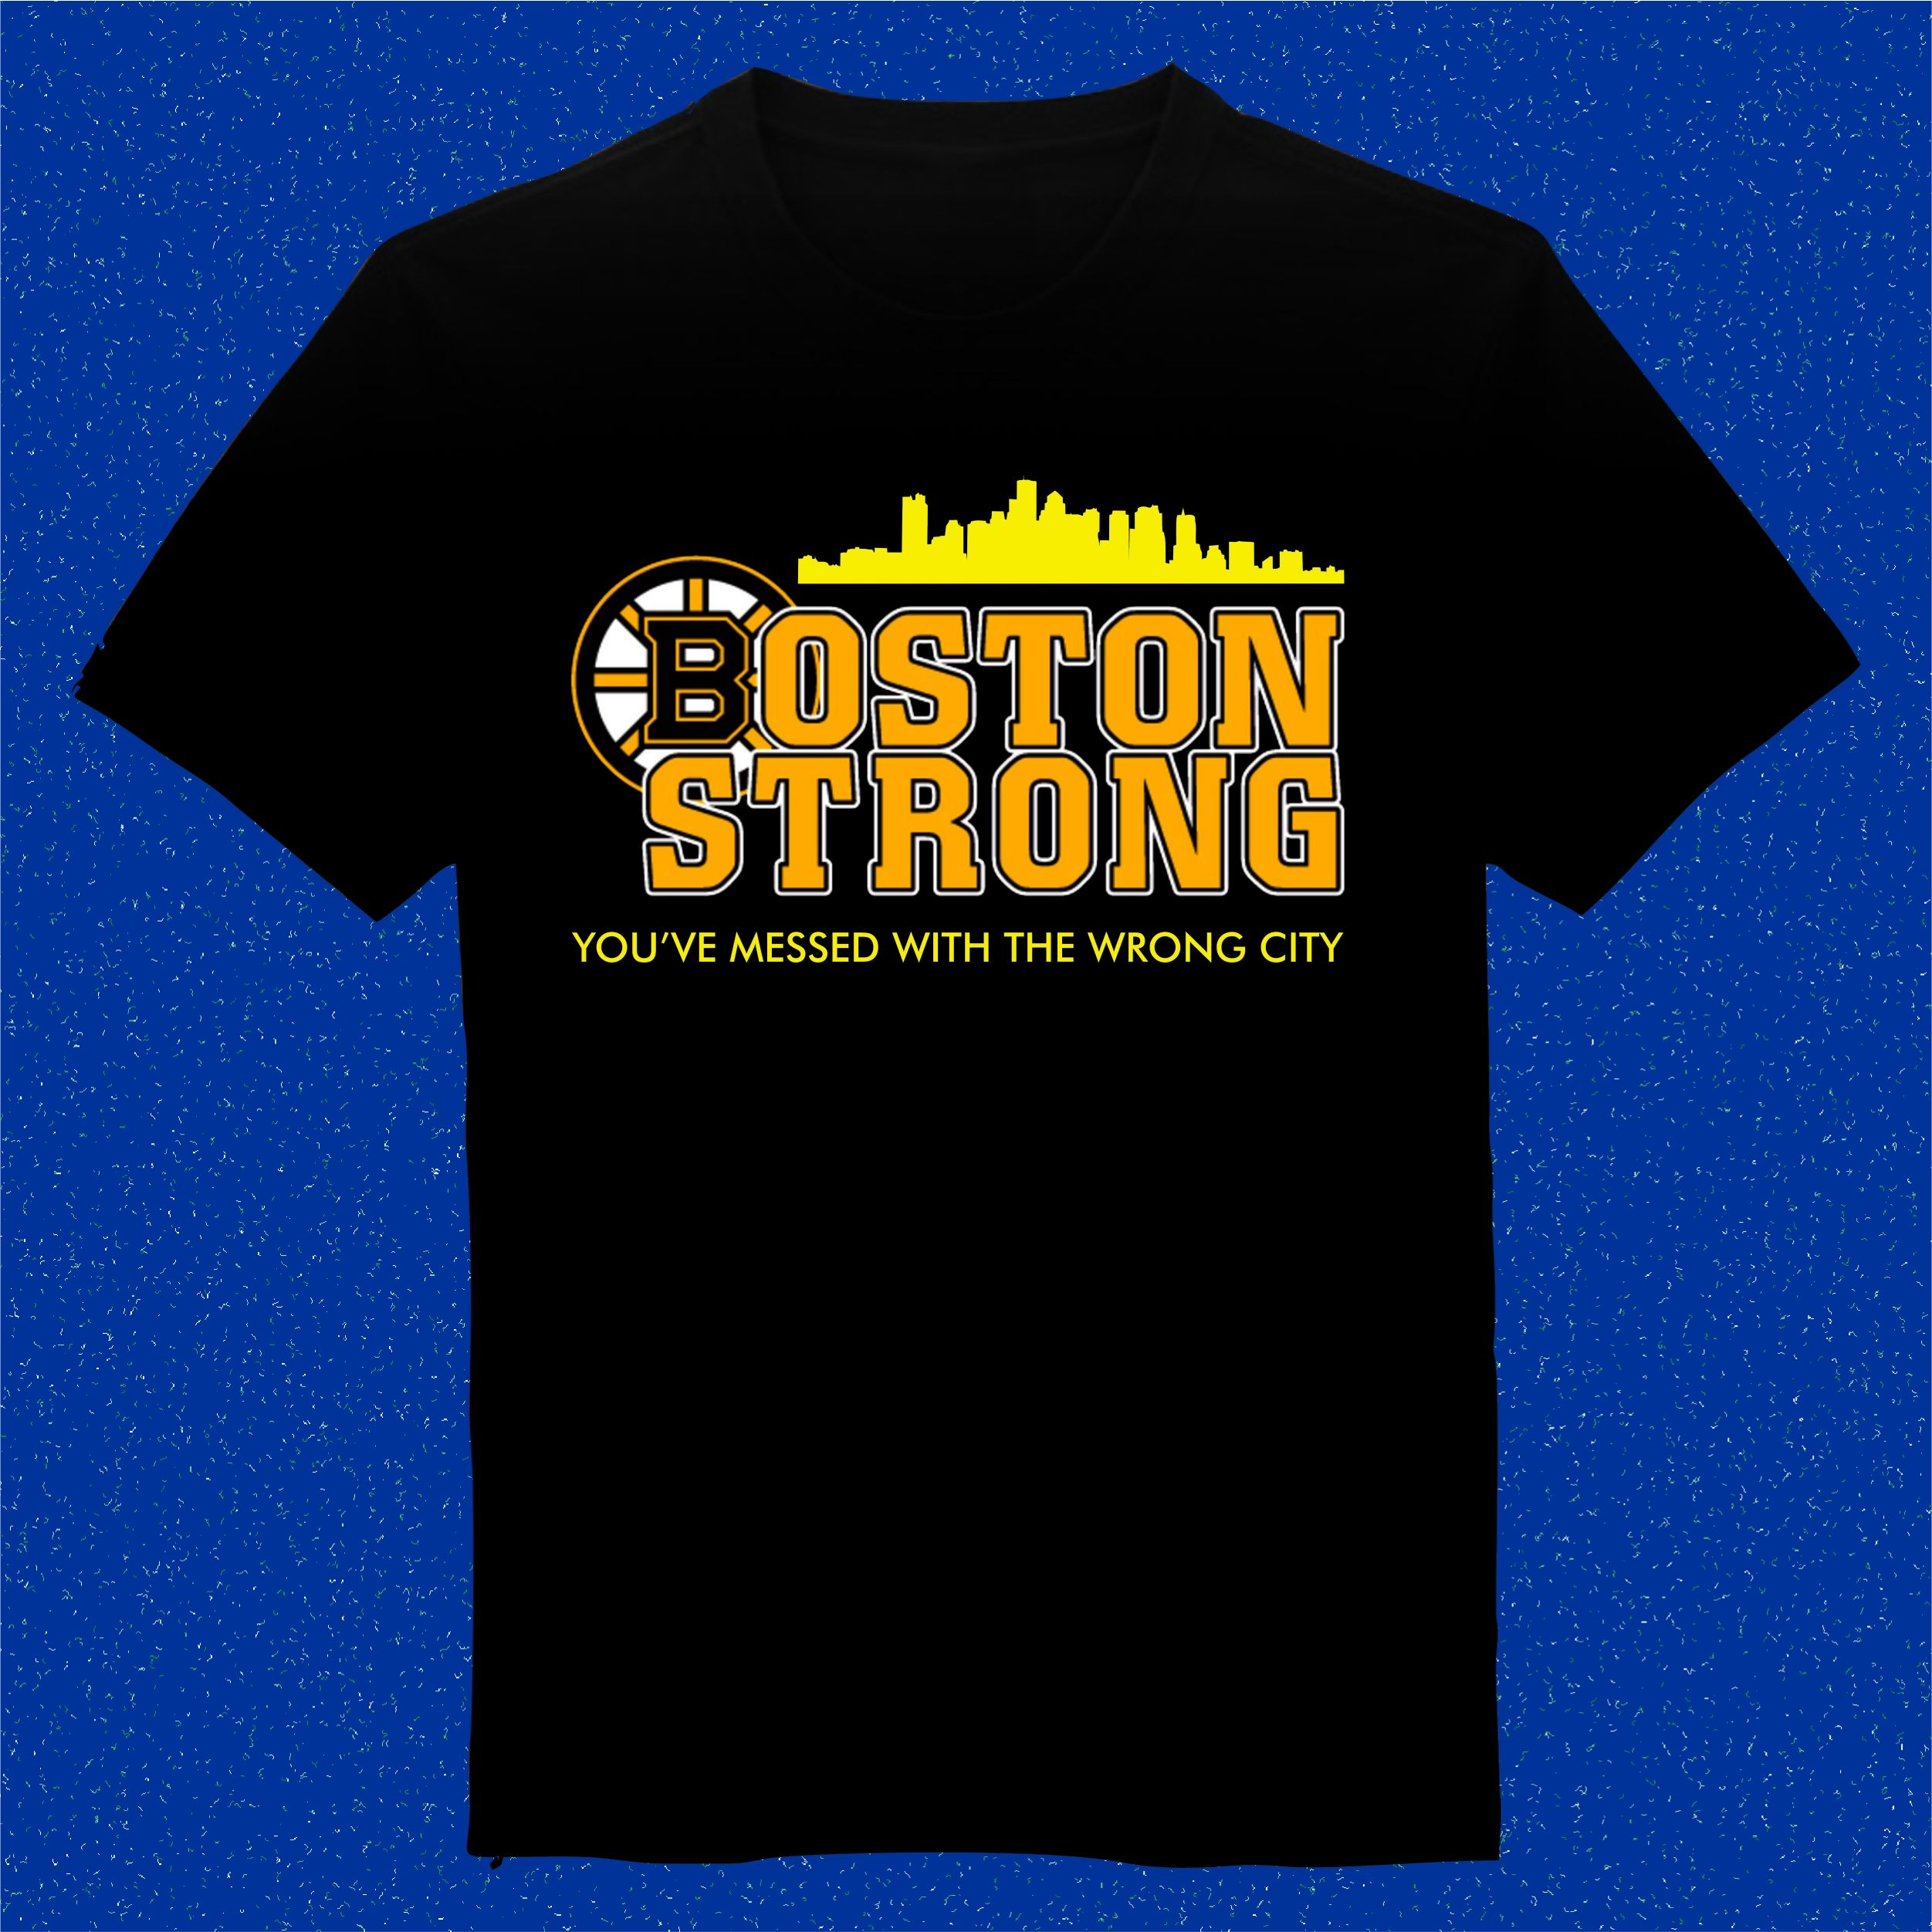 ebe11457c4ba Boston Strong T-shirt Mens And Womens Cotton Screenprint Size S - 3XL on  Luulla